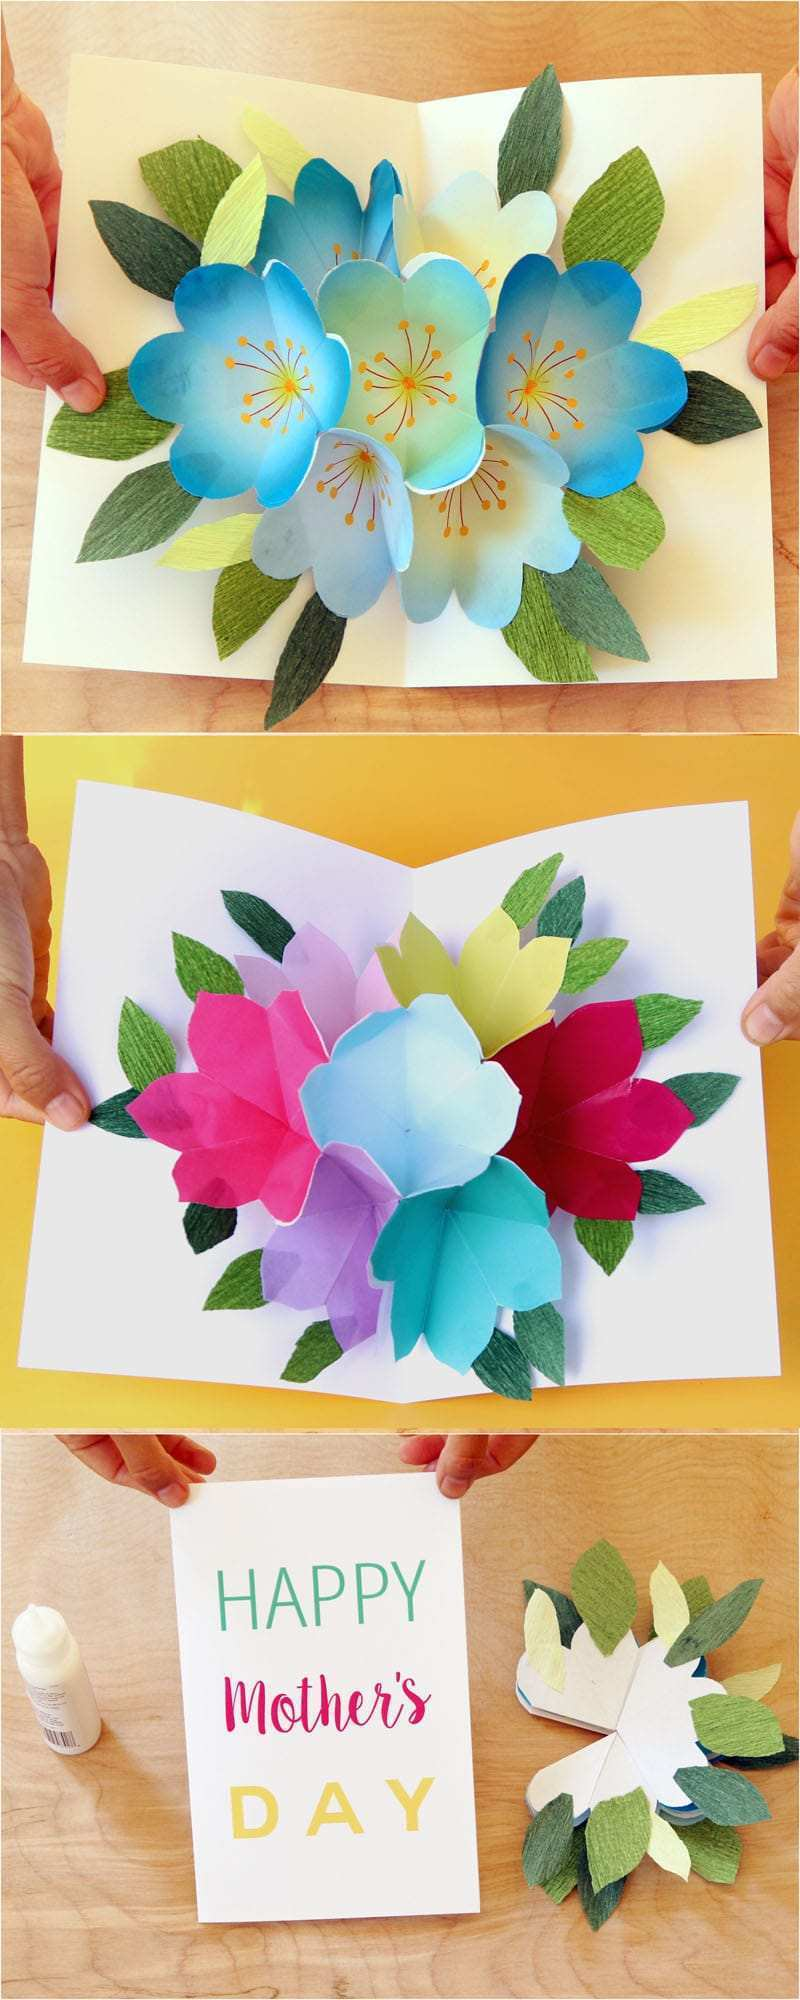 58 How To Create Mother S Day Card Craft Template Photo for Mother S Day Card Craft Template